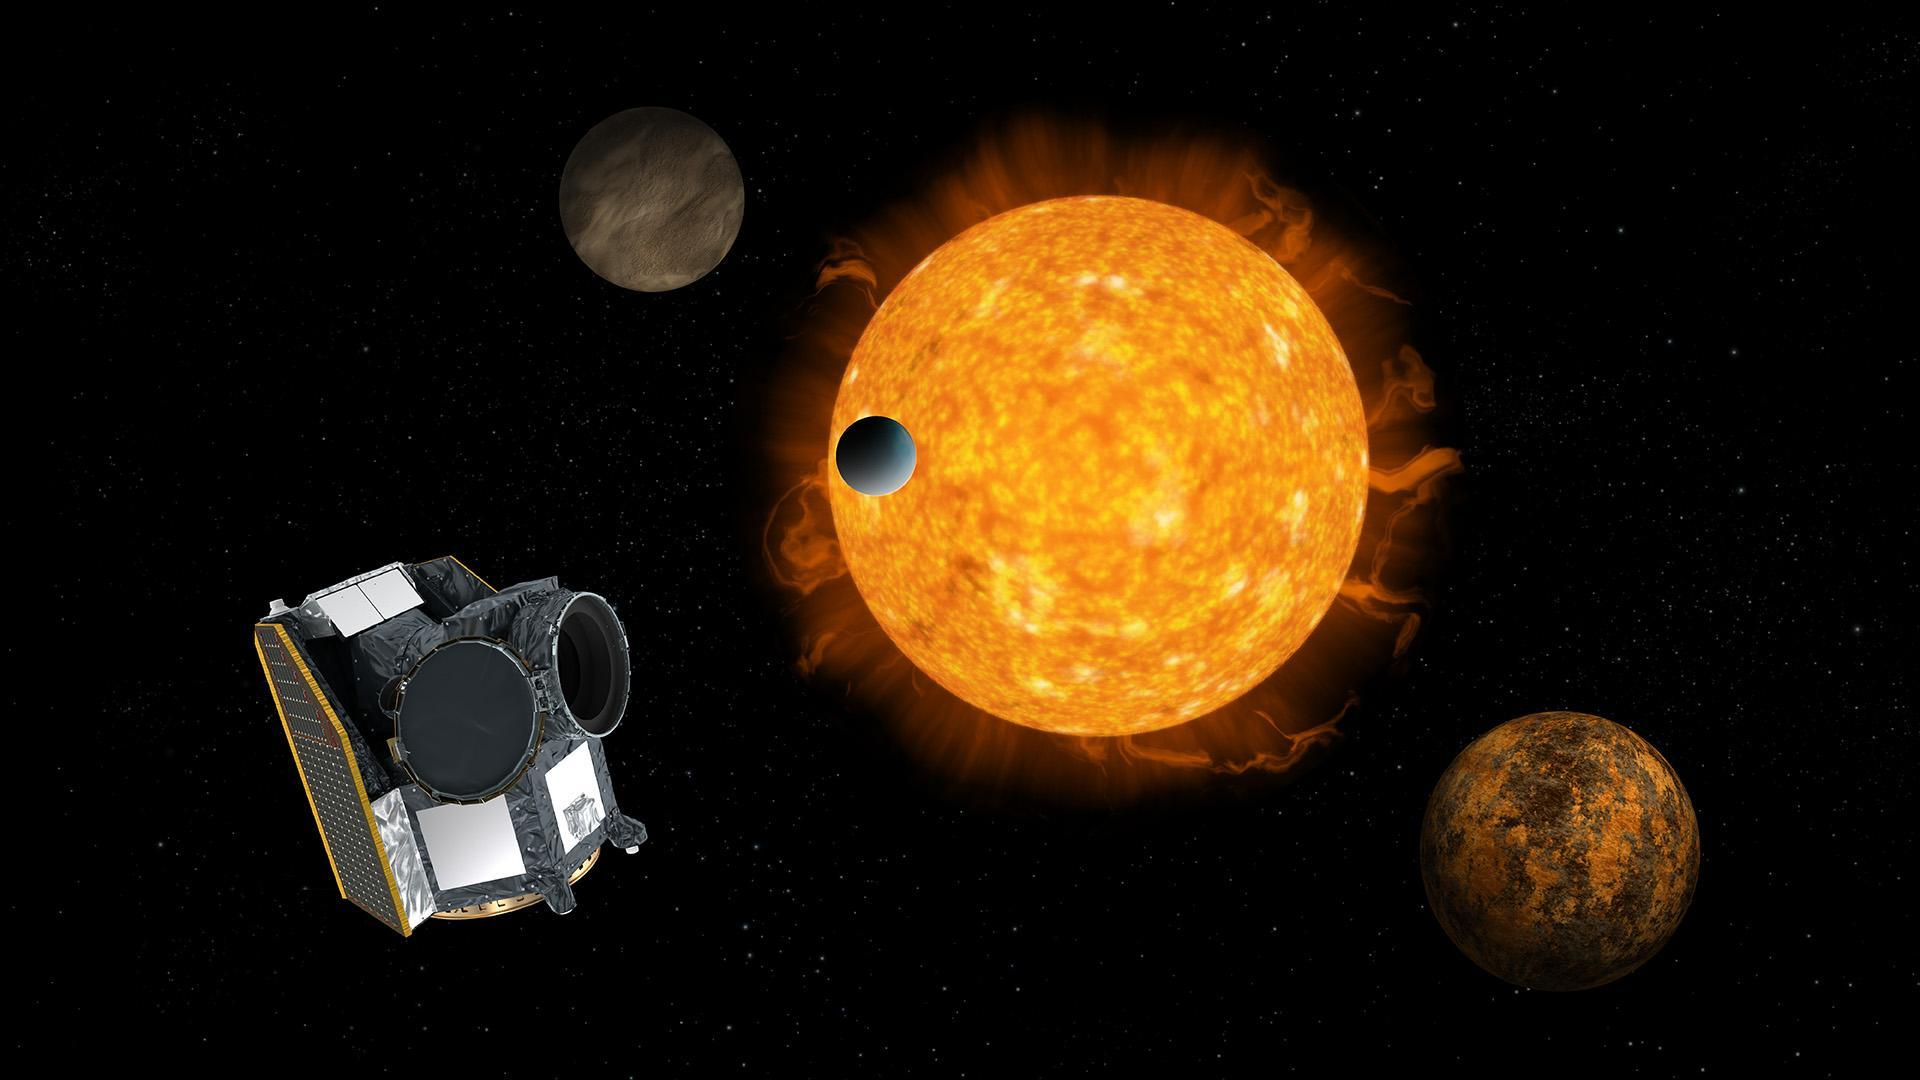 CHEOPS - ESA's first exoplanetary mission